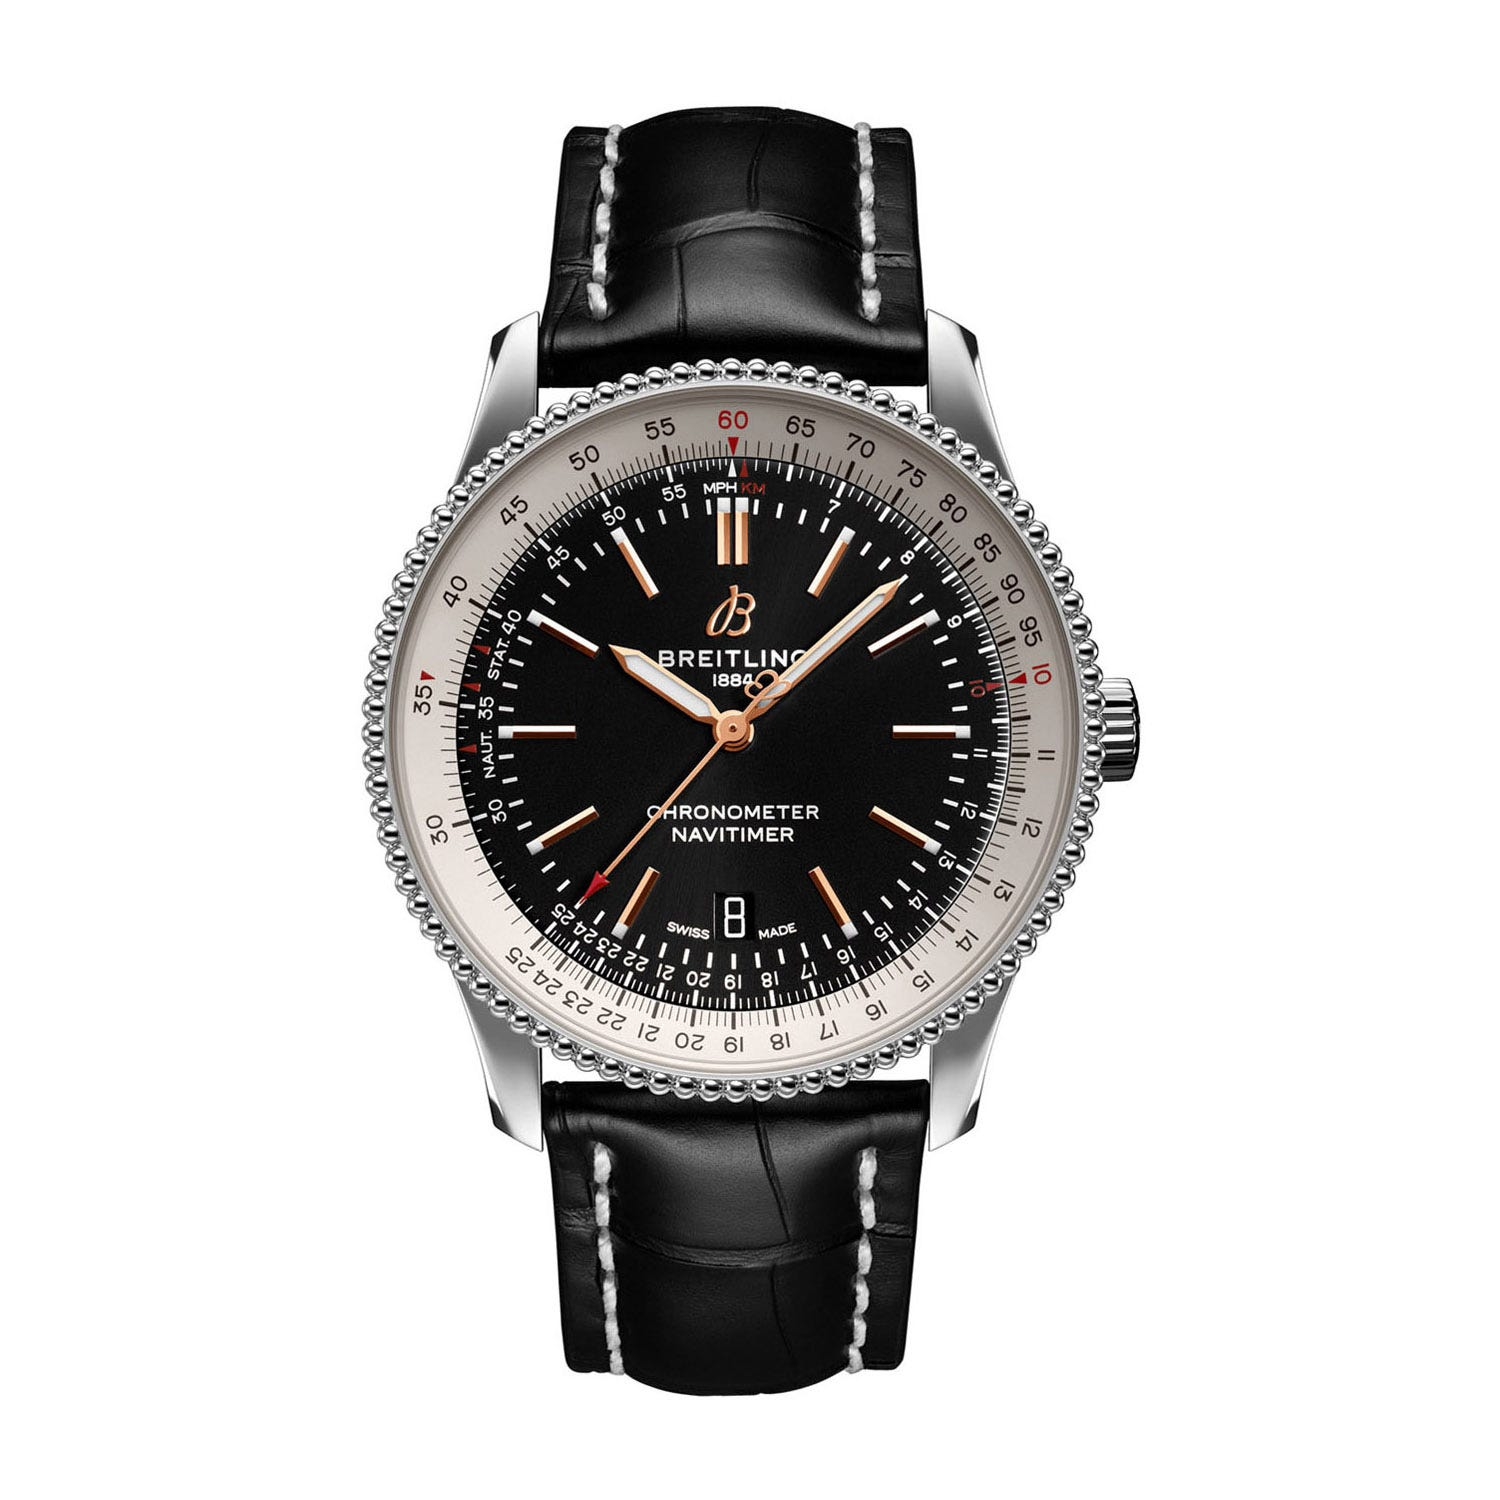 Breitling Navitimer 1 Automatic Black Dial & Leather 41mm Men's Watch